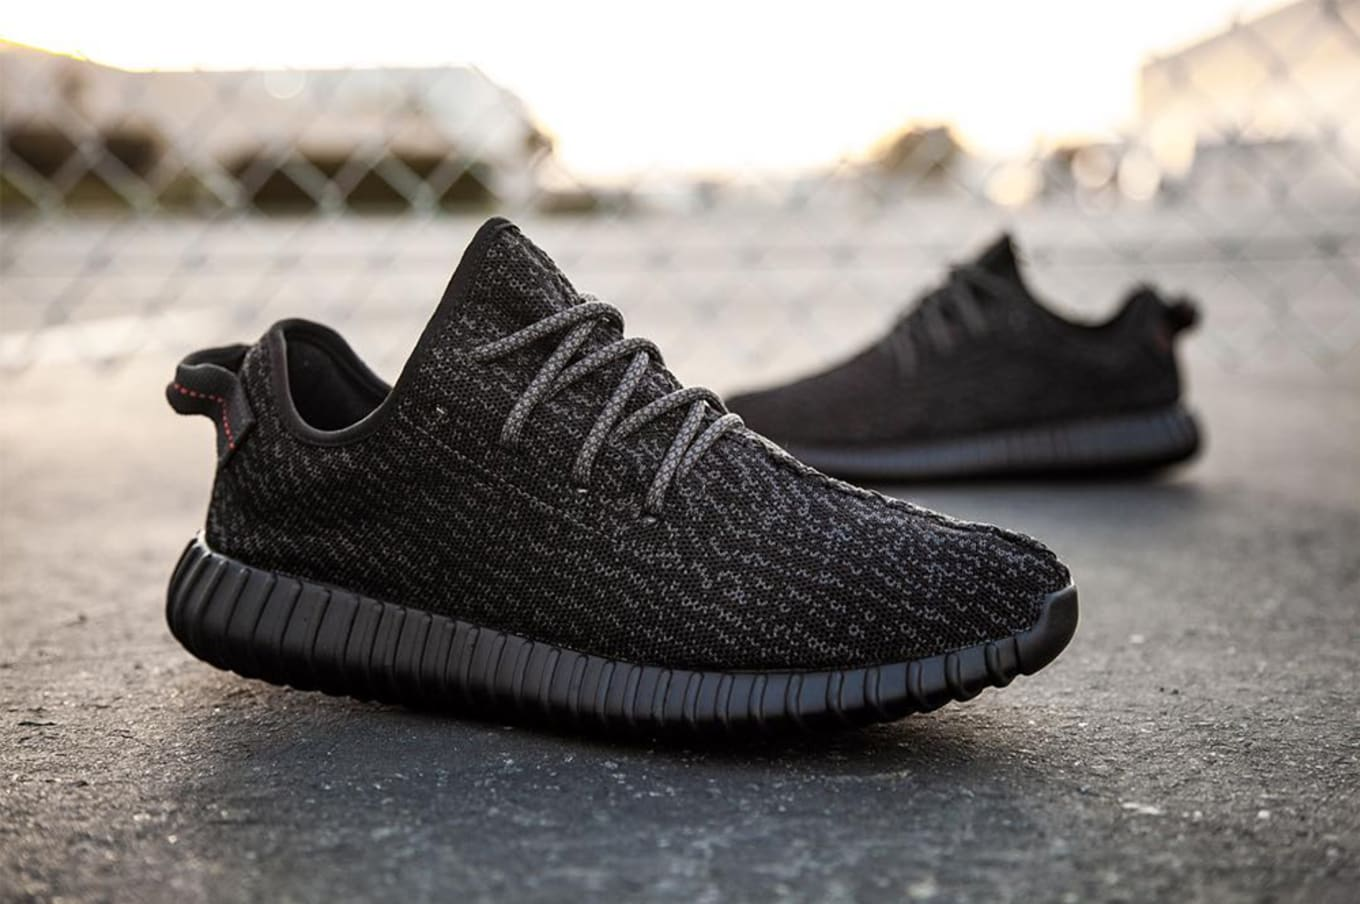 c318af1101c adidas Just Opened Confirmed Reservations for the  Pirate Black  Yeezy  Boost 350